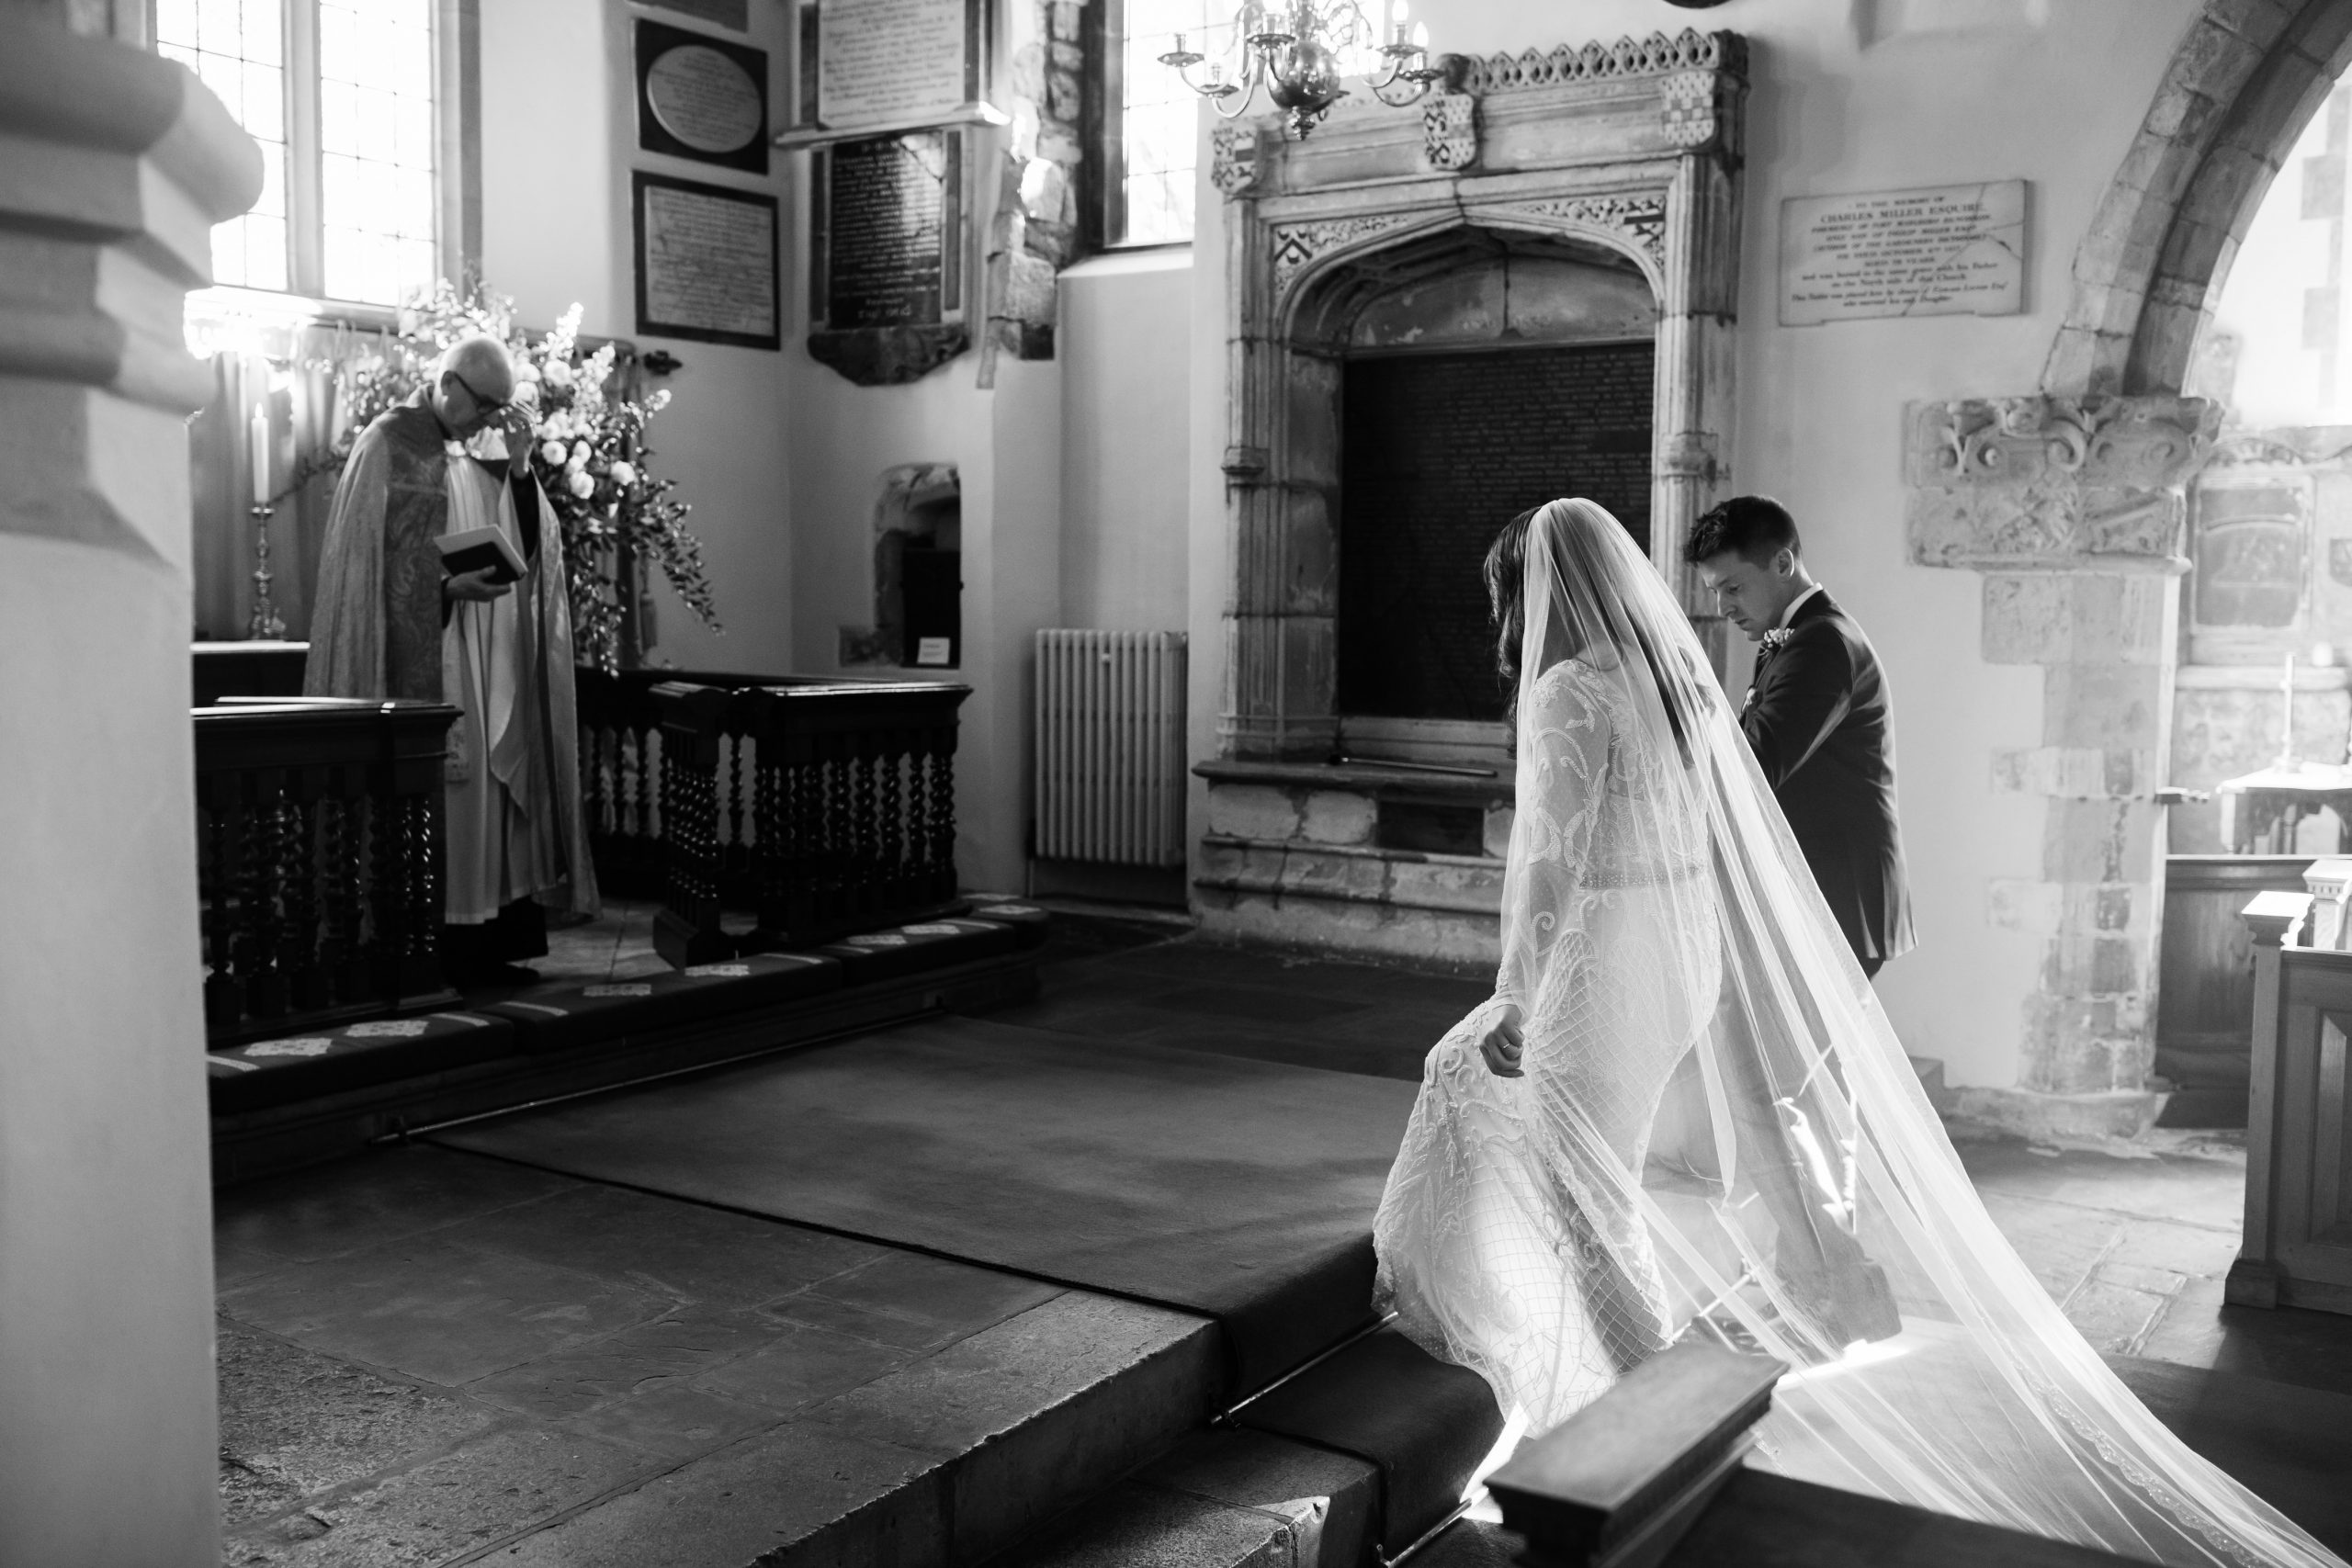 bride and groom in wedding ceremony at Chelsea old church